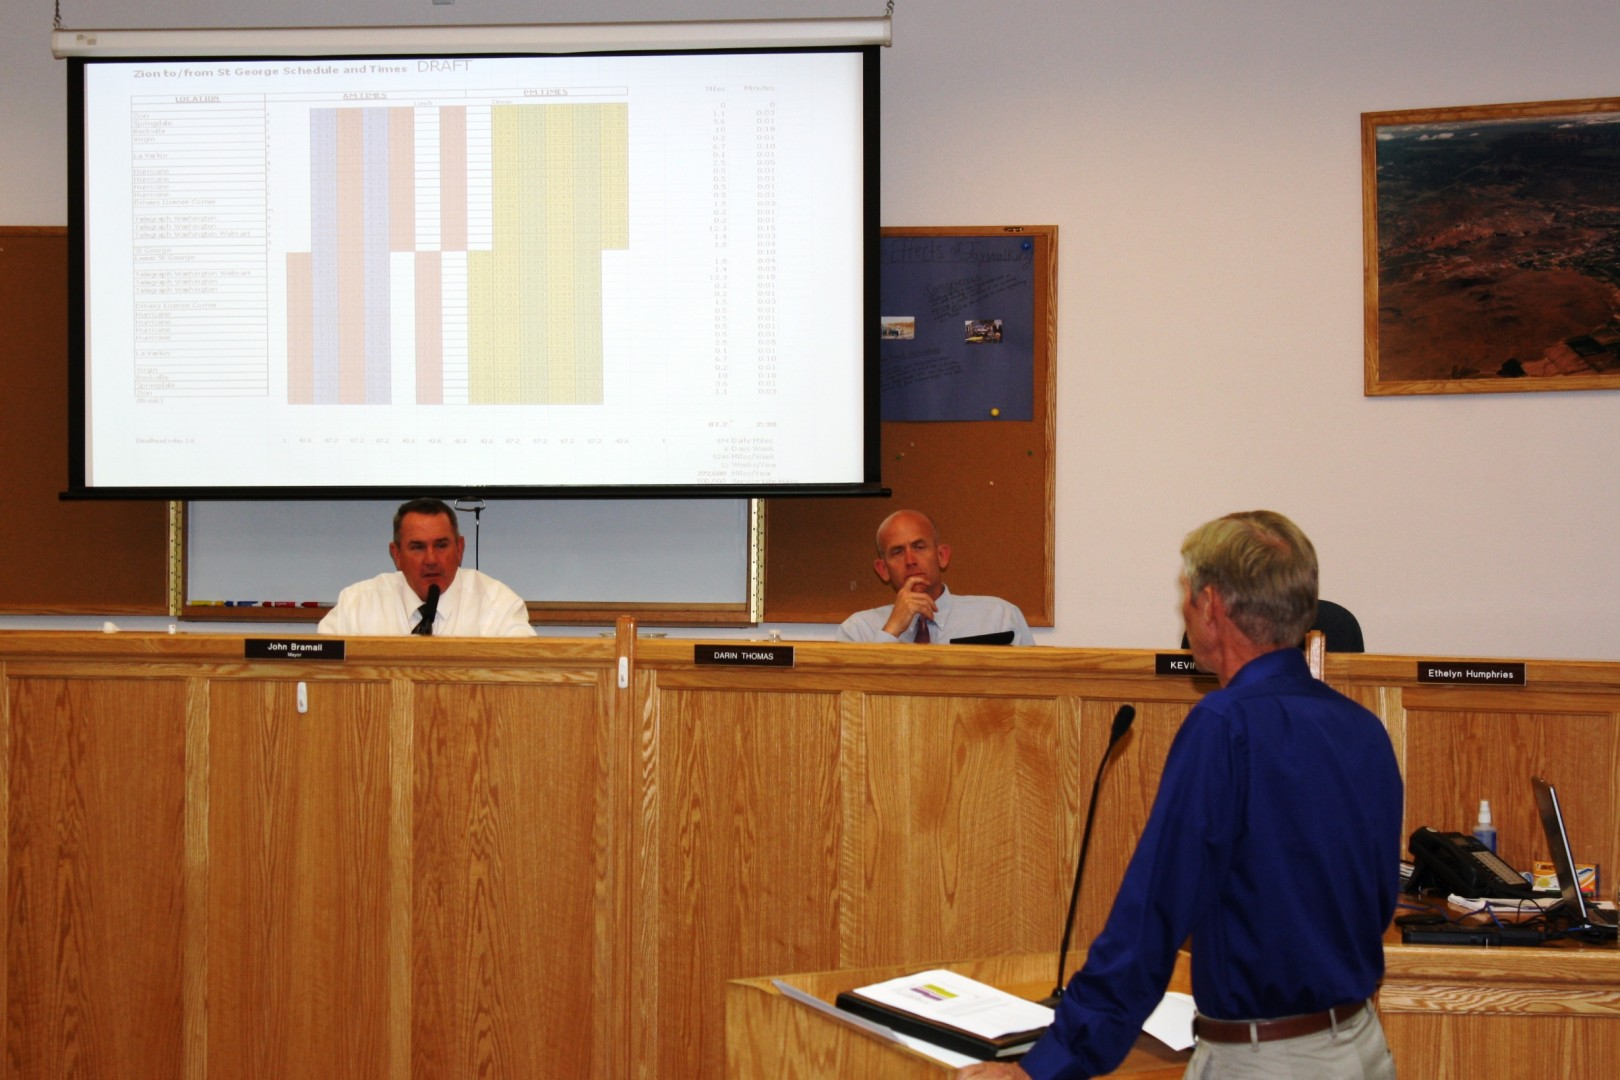 SunTran Transit Manager Fred Davies shows the Hurricane City Council a draft of the proposed schedule for a commuter bus route between St. George and Springdale, September 4, 2014 | Photo by Reuben Wadsworth, St. George News